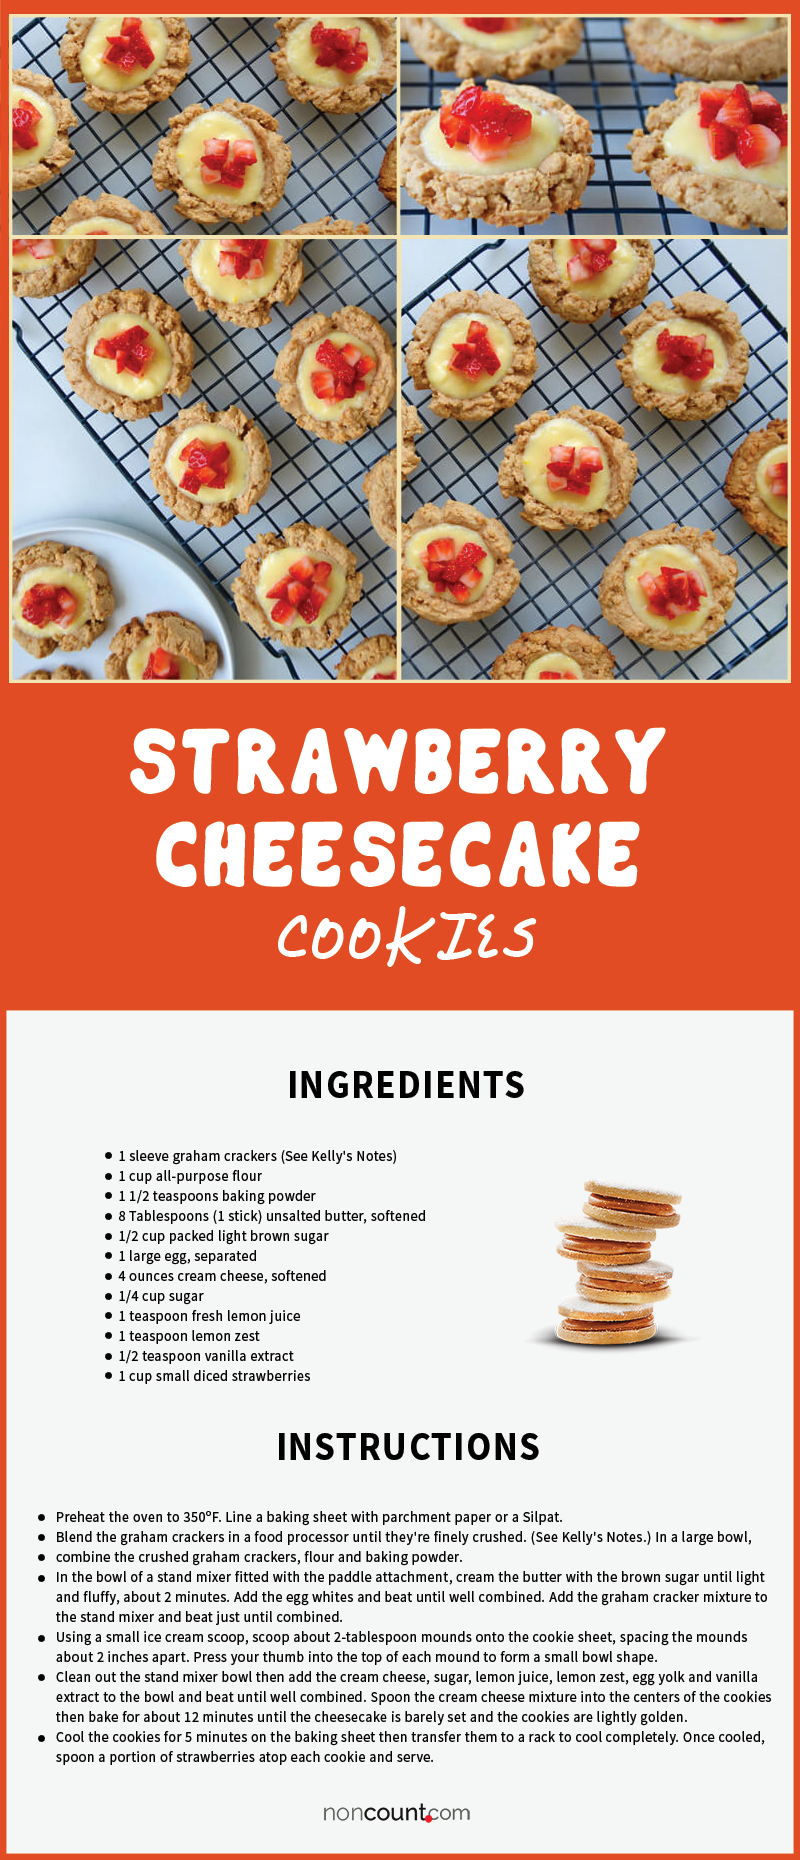 Strawberry Cheesecake Cookies Recipe Details Image